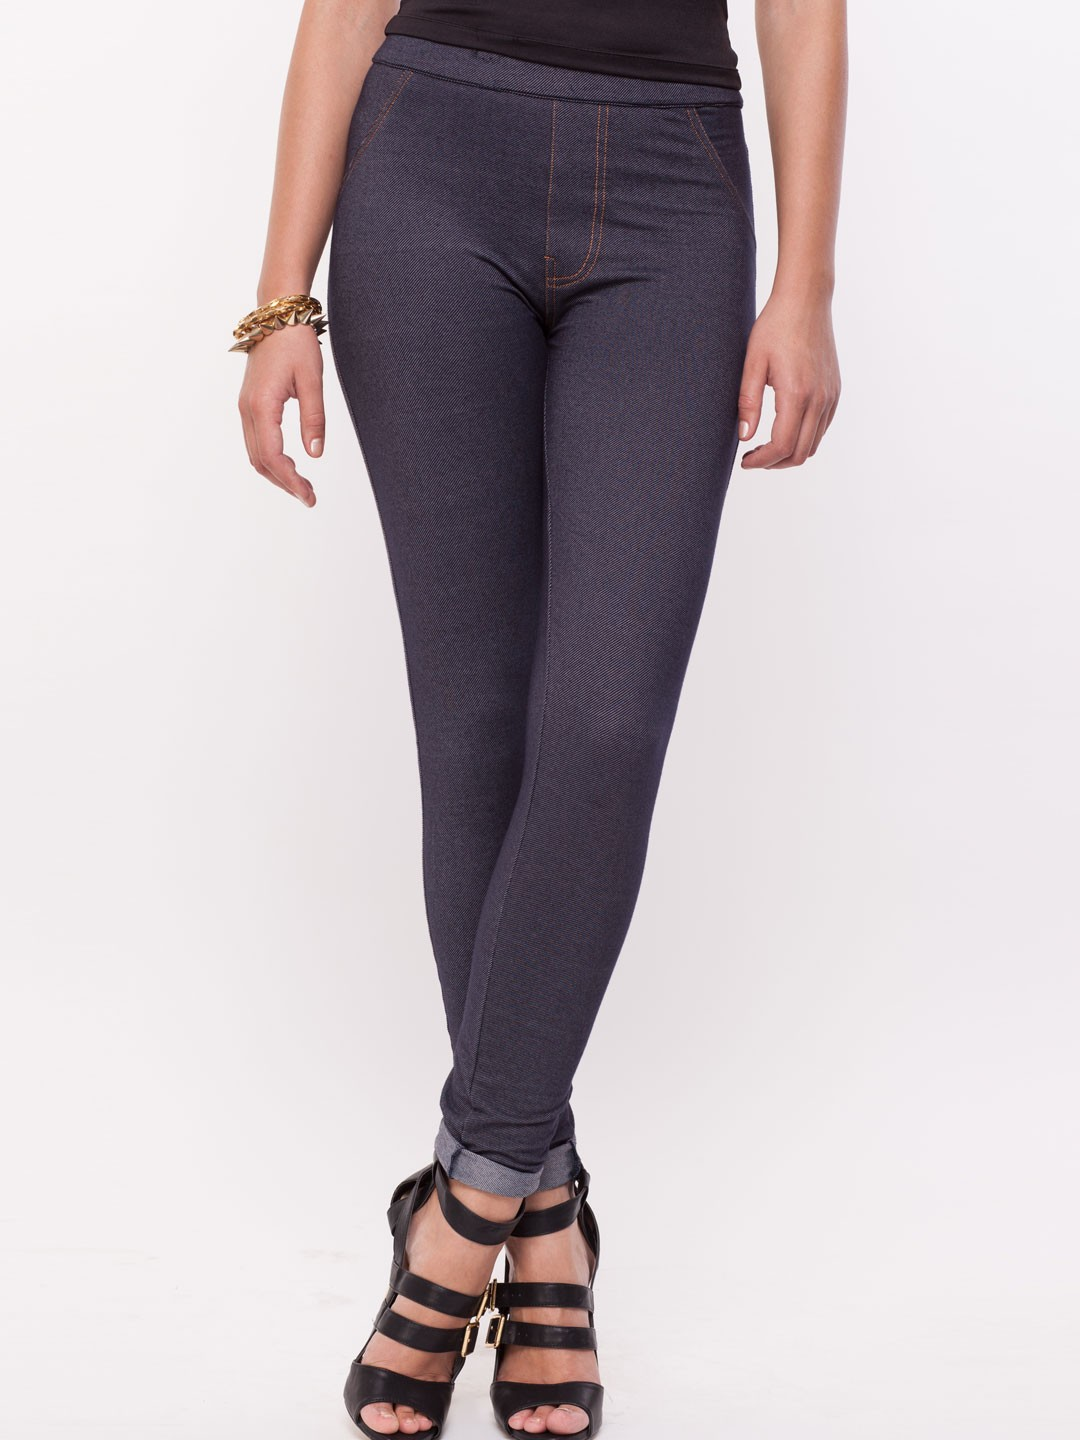 Jeggings Women's Jeans & Jeggings: Shop from a wide range of Jeggings Women's Jeans & Jeggings online at best prices in India. Check out price and features of Jeggings Women's Jeans & Jeggings at distrib-wq9rfuqq.tk No cost EMI offers, COD and great discounts available on eligible purchases.